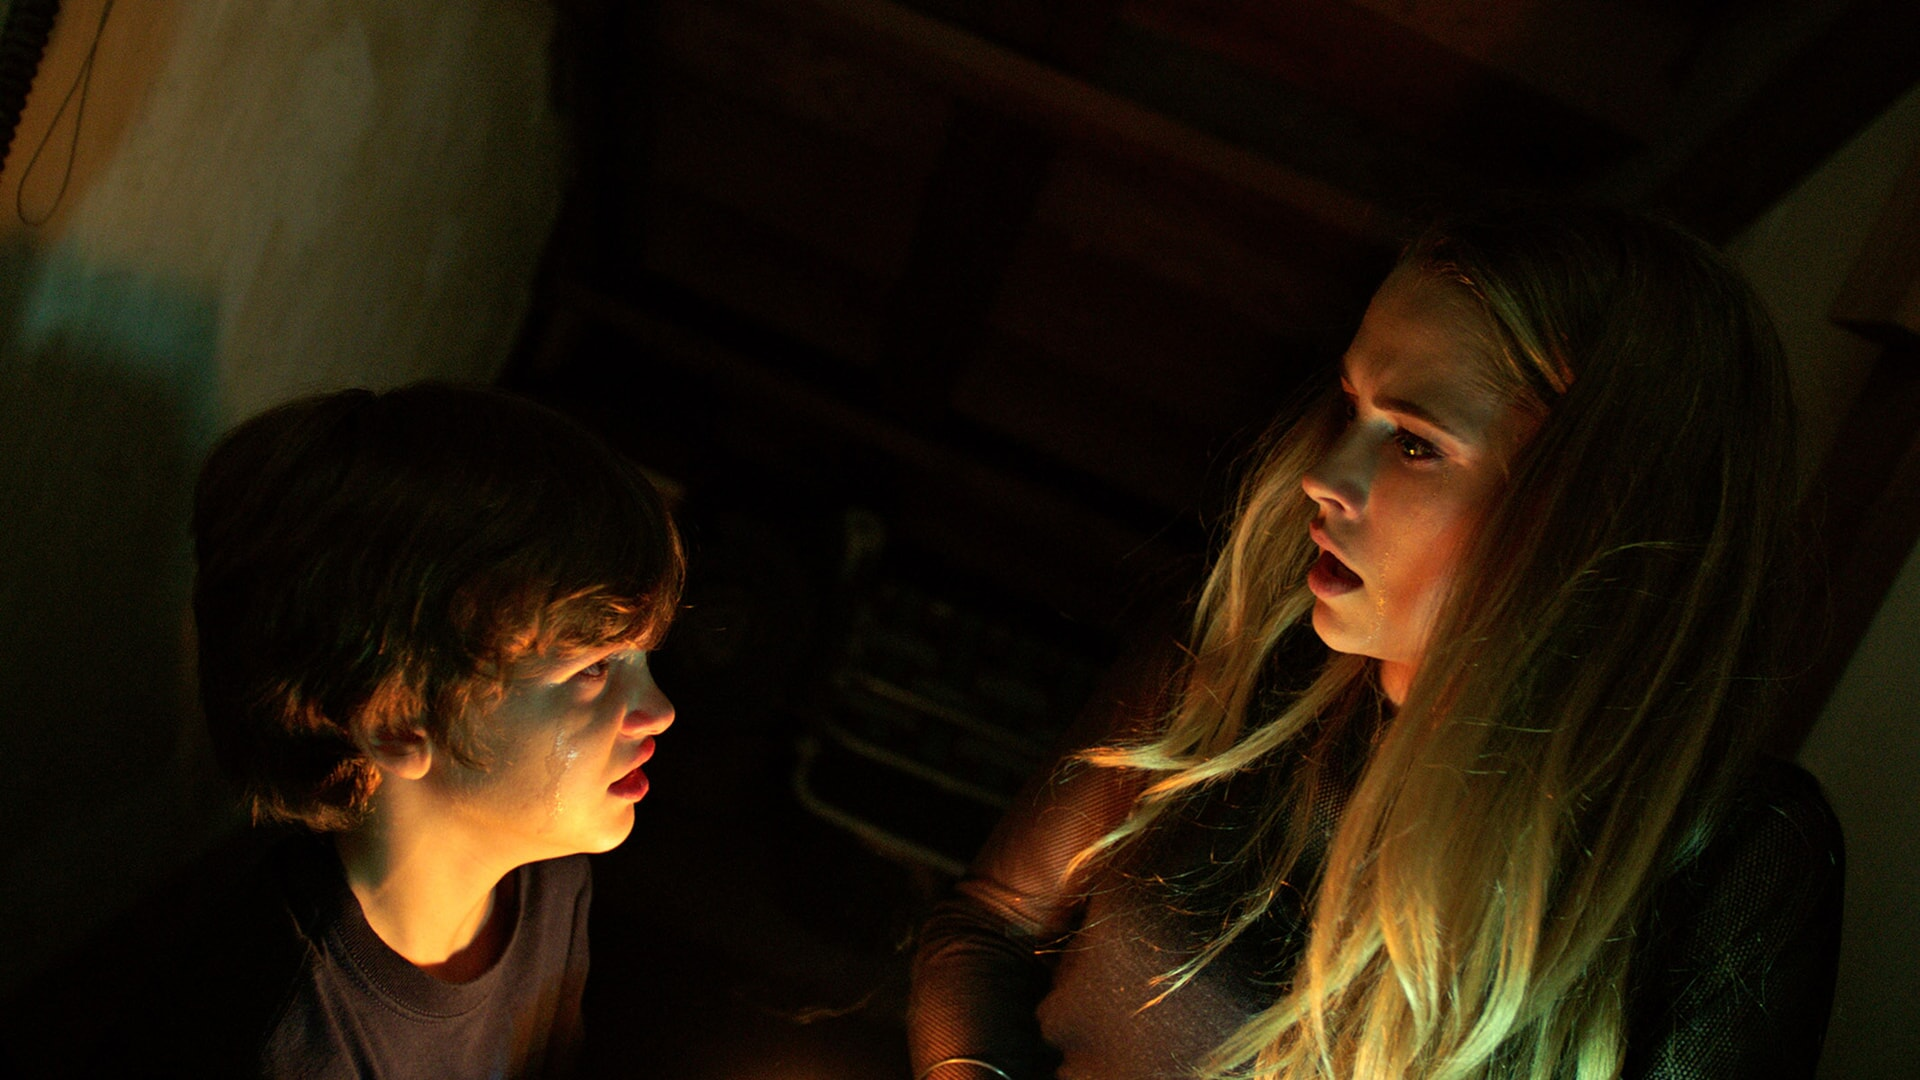 GABRIEL BATEMAN as Martin and TERESA PALMER as Rebecca